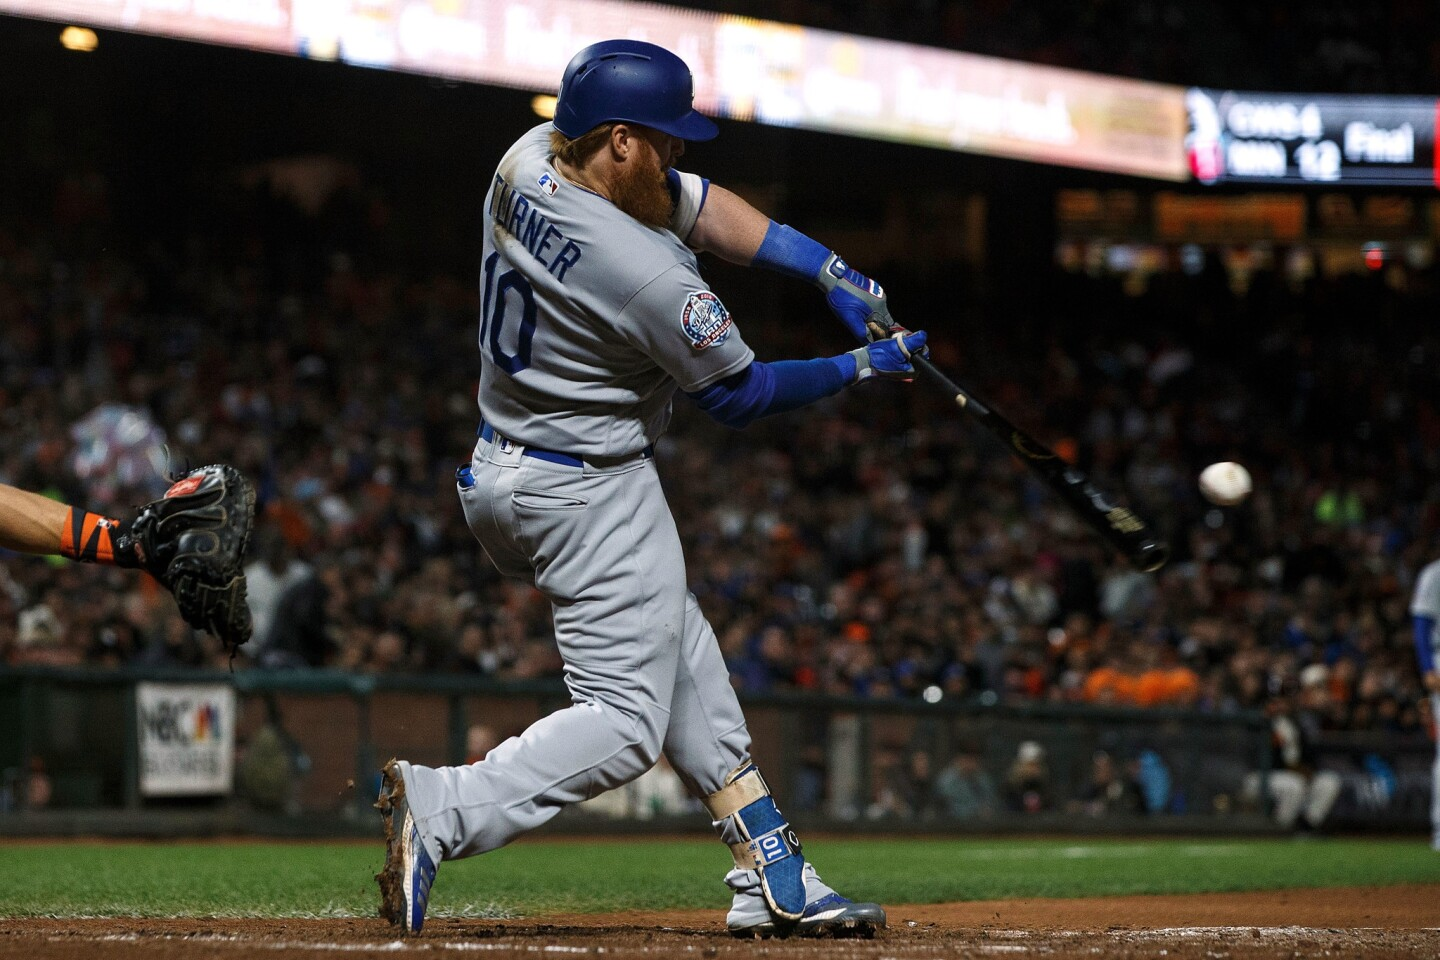 SAN FRANCISCO, CA - SEPTEMBER 28: Justin Turner #10 of the Los Angeles Dodgers hits a two run home run against the San Francisco Giants during the fifth inning at AT&T Park on September 28, 2018 in San Francisco, California. The Los Angeles Dodgers defeated the San Francisco Giants 3-1. (Photo by Jason O. Watson/Getty Images) ** OUTS - ELSENT, FPG, CM - OUTS * NM, PH, VA if sourced by CT, LA or MoD **